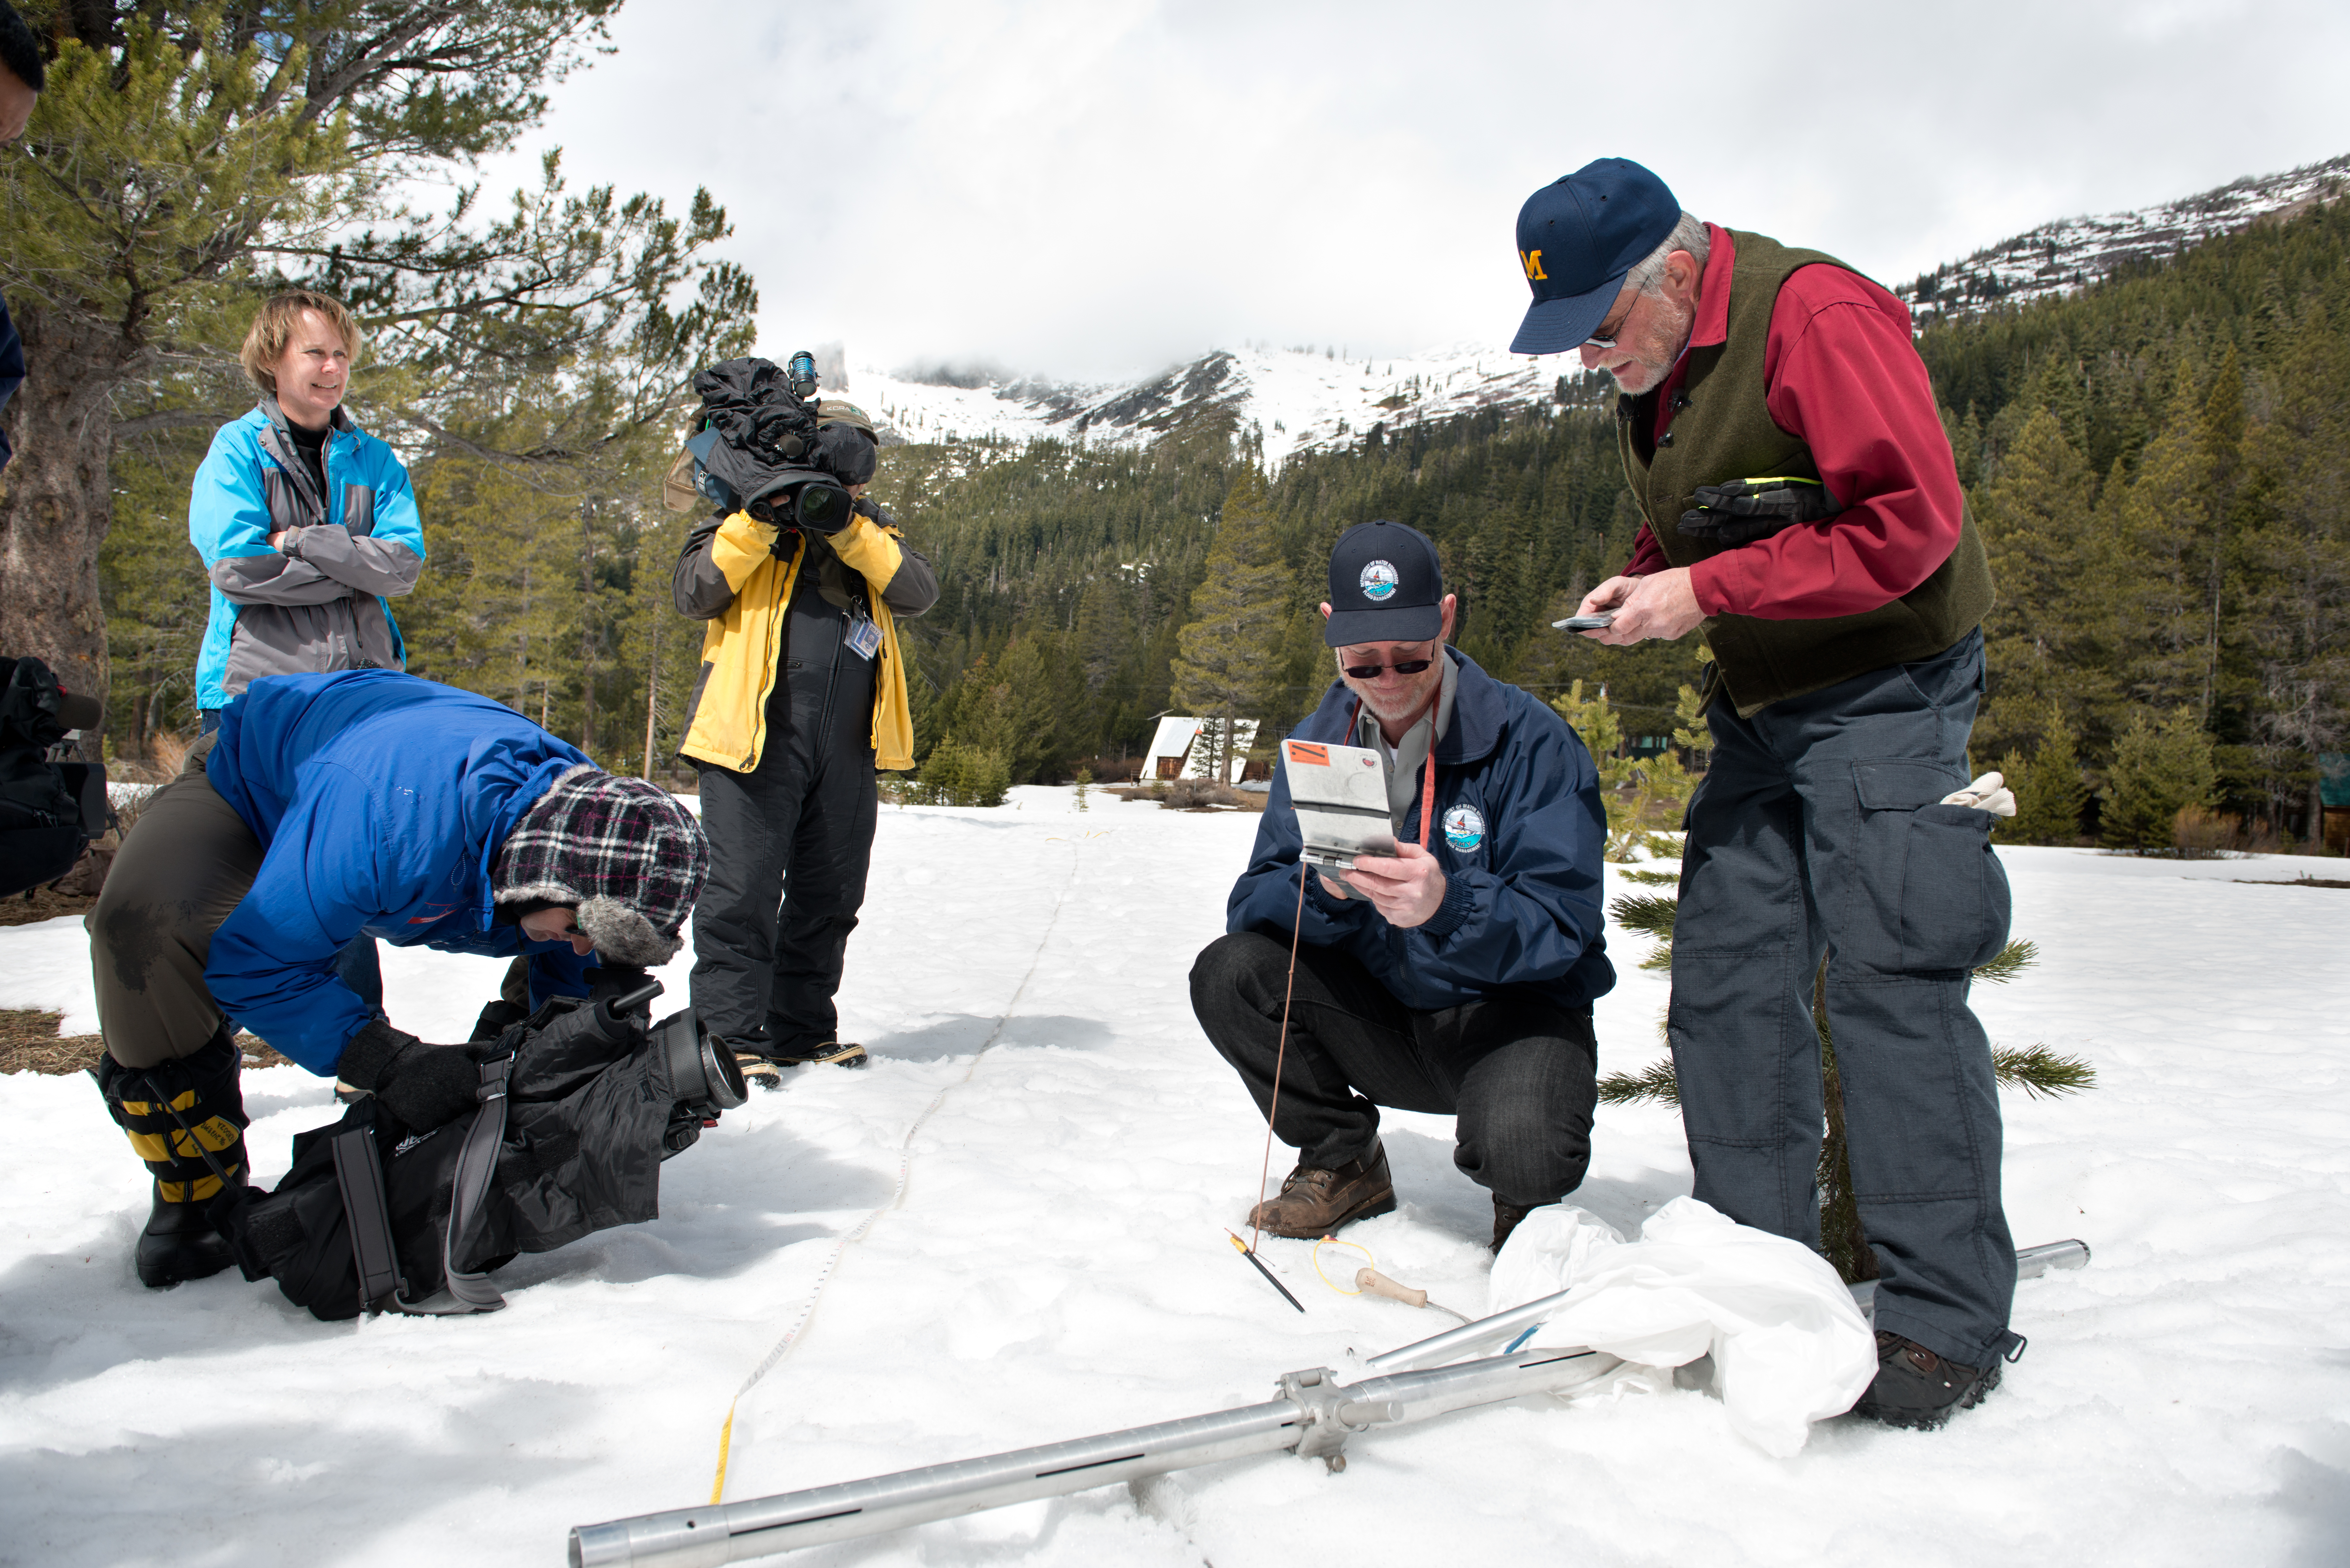 This photo from March 2013 shows Keith Swanson (DWR Chief of Division of Flood Management) and Frank Gehrke (DWR Chief of Snow Surveys) conduct the annual snow survey at Phillips Station. This year, the location had no visible snow covering the ground. (Photo courtesy Gov. Jerry Brown's Office)